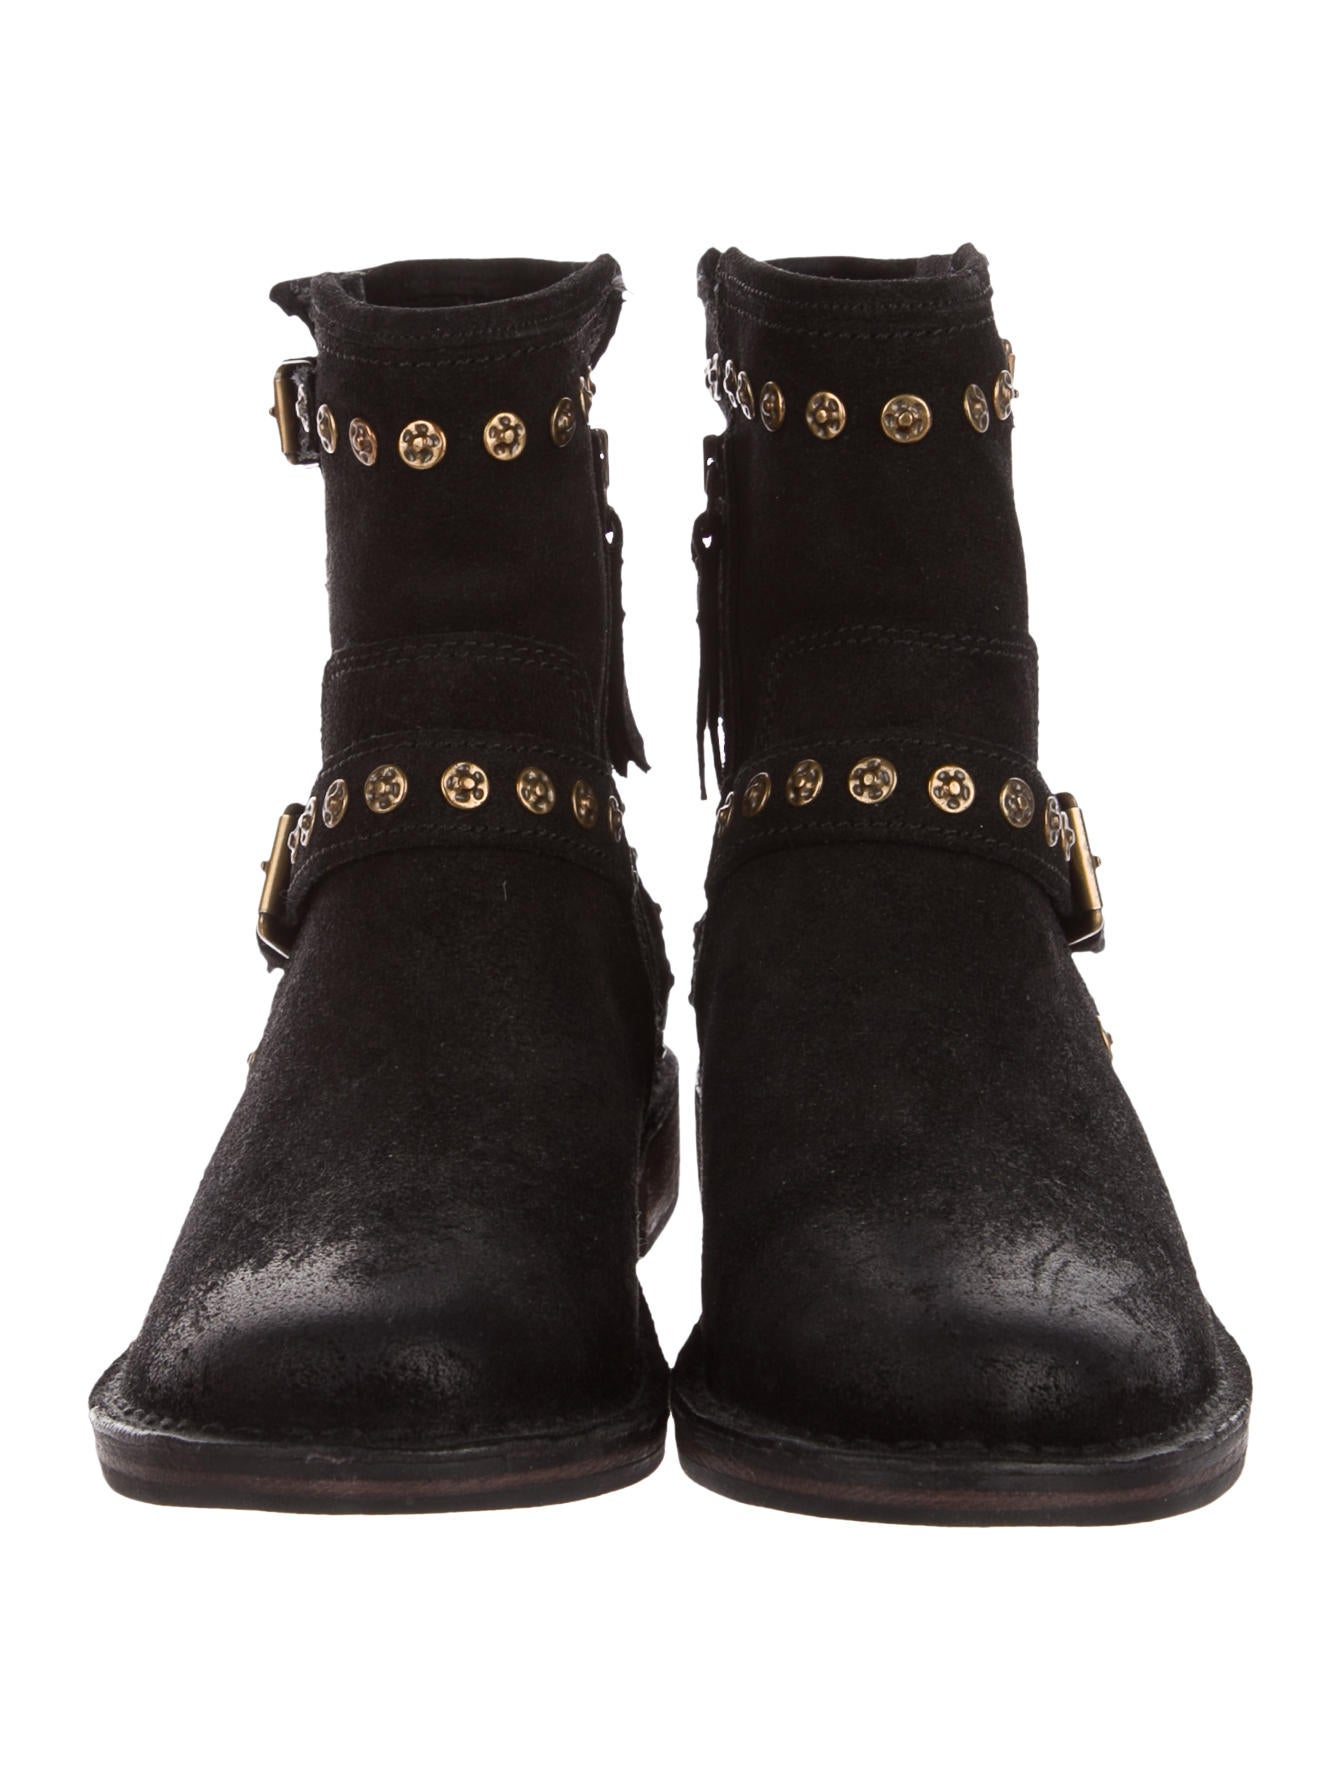 UGG Australia Fabrizia Studded Ankle Boots w/ Tags wide range of for sale on hot sale with mastercard cheap online new styles online uLLau